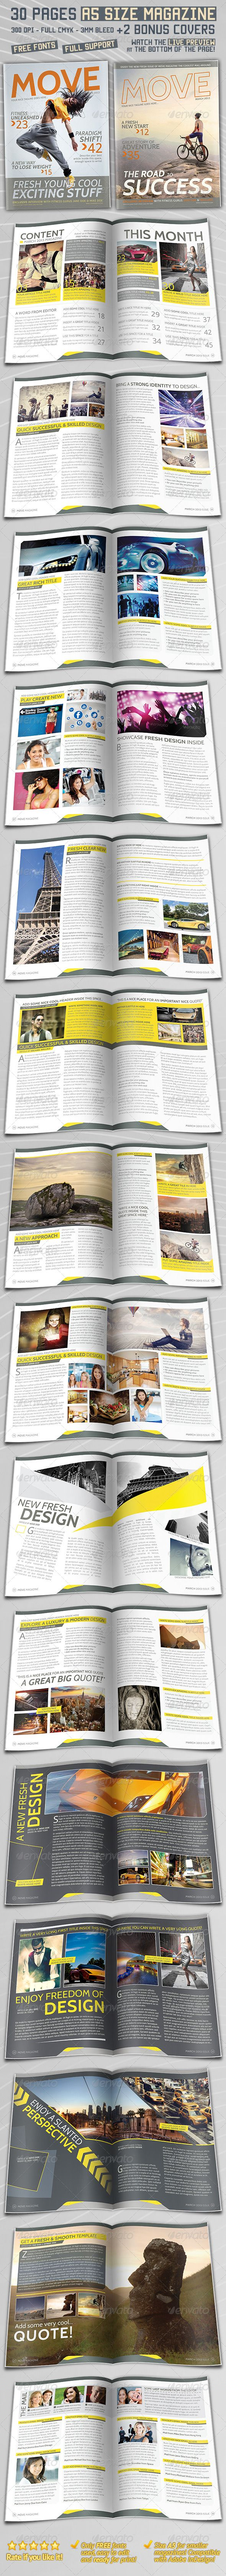 DOWNLOAD:  https://graphicriver.net/item/a5-magazine-30-pages-2-covers/4157872?ref=StormDesigns  A5 Modern Magazine template for Adobe InDesign!